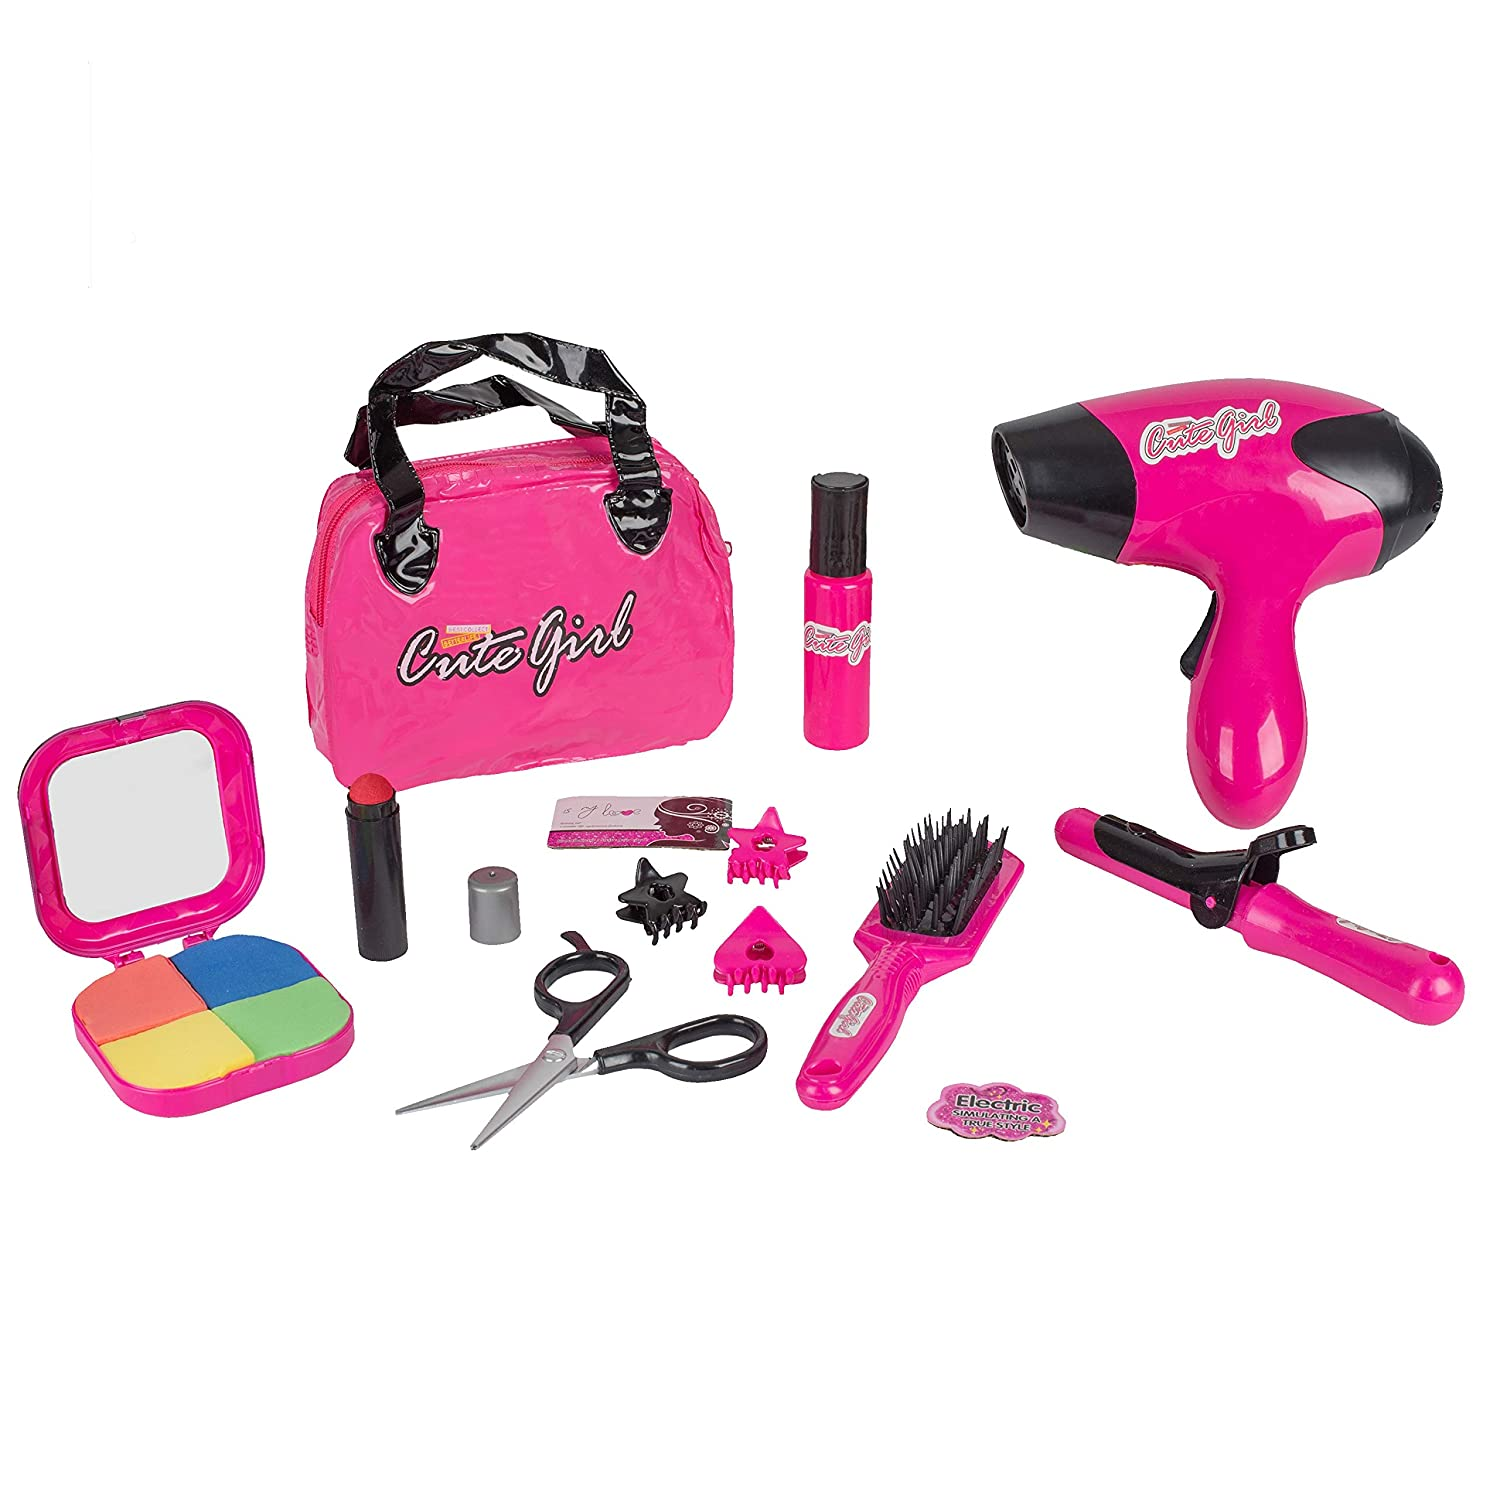 Big Mo's Toys Kids Beauty Salon Set Stylish Girls Beauty Fashion Pretend Play Toy with Cosmetic Bag Hairdryer Curling Iron Blush Pallet with Mirror Lipstick Styling Accessories 12 Piece Set